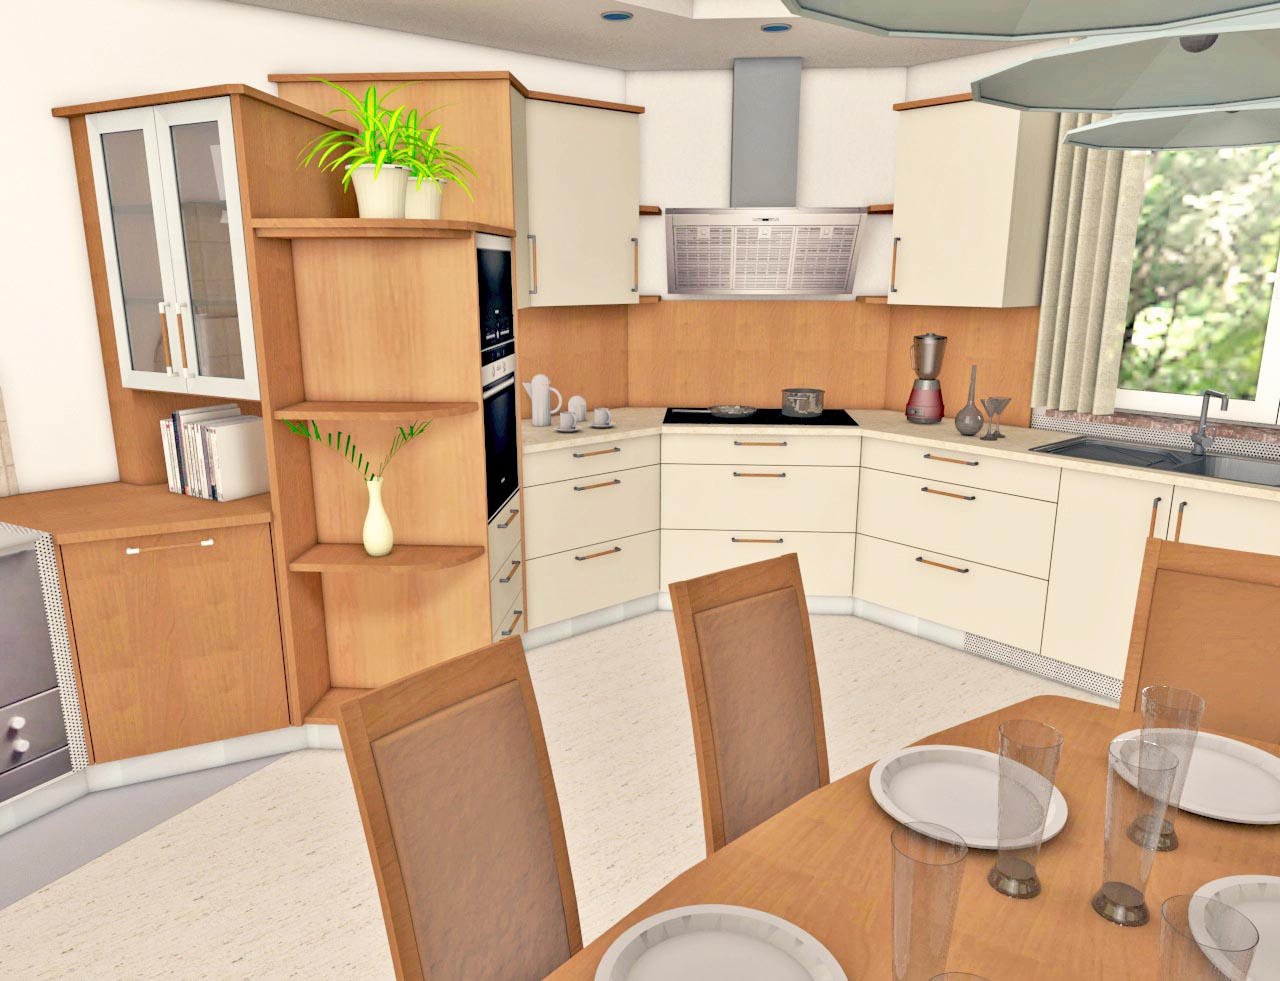 Kitchen design interiorcad for vectorworks for Home decor uk sheffield